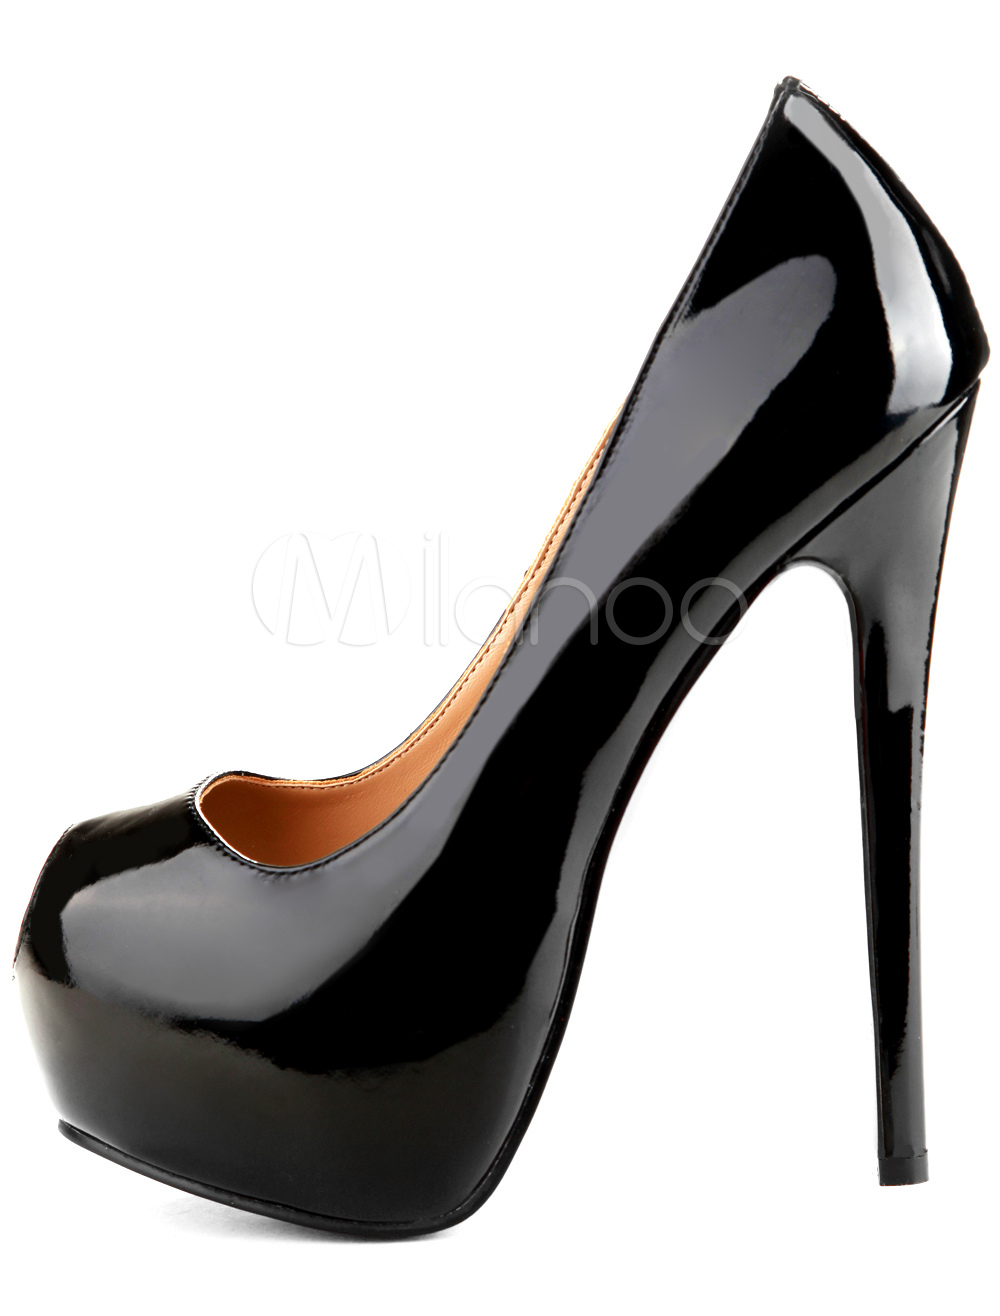 278bfb673a84 Black High Heels Women Dress Shoes Peep Toe Platform Slip On Pumps -  Milanoo.com